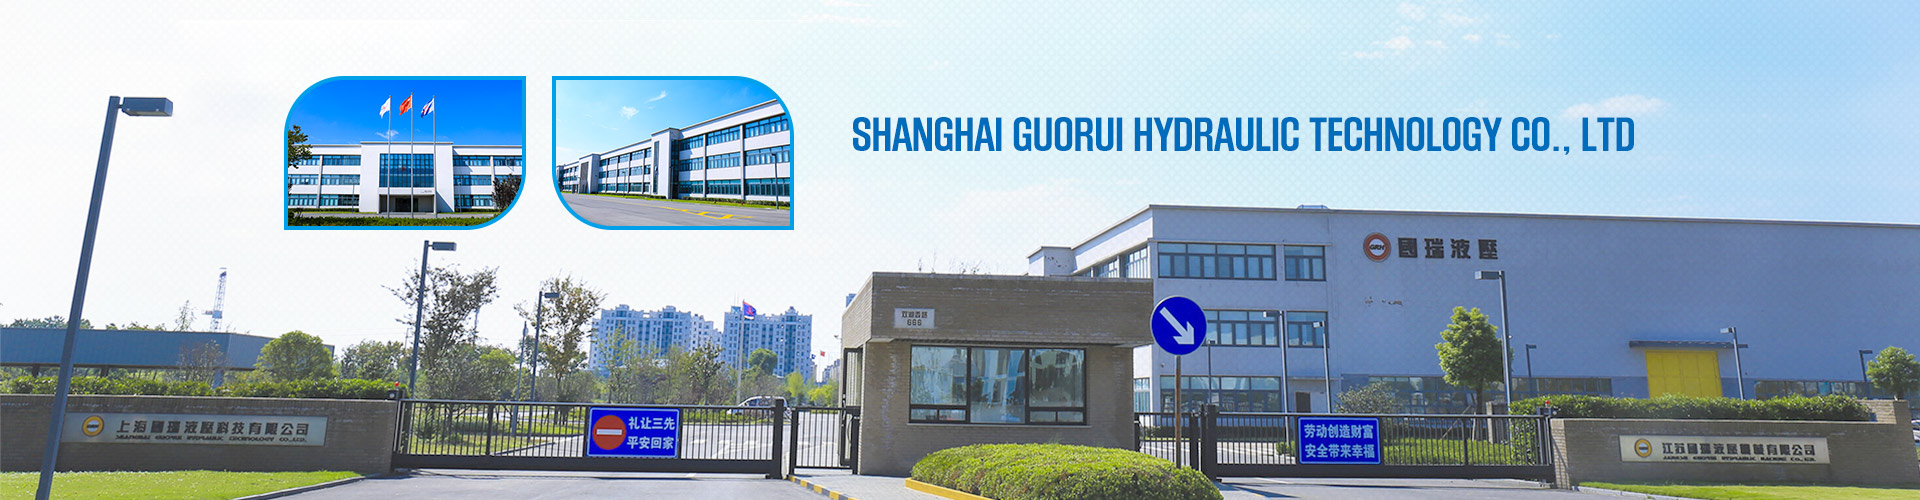 Shanghai Guorui Hydraulisk Technology Co Ltd